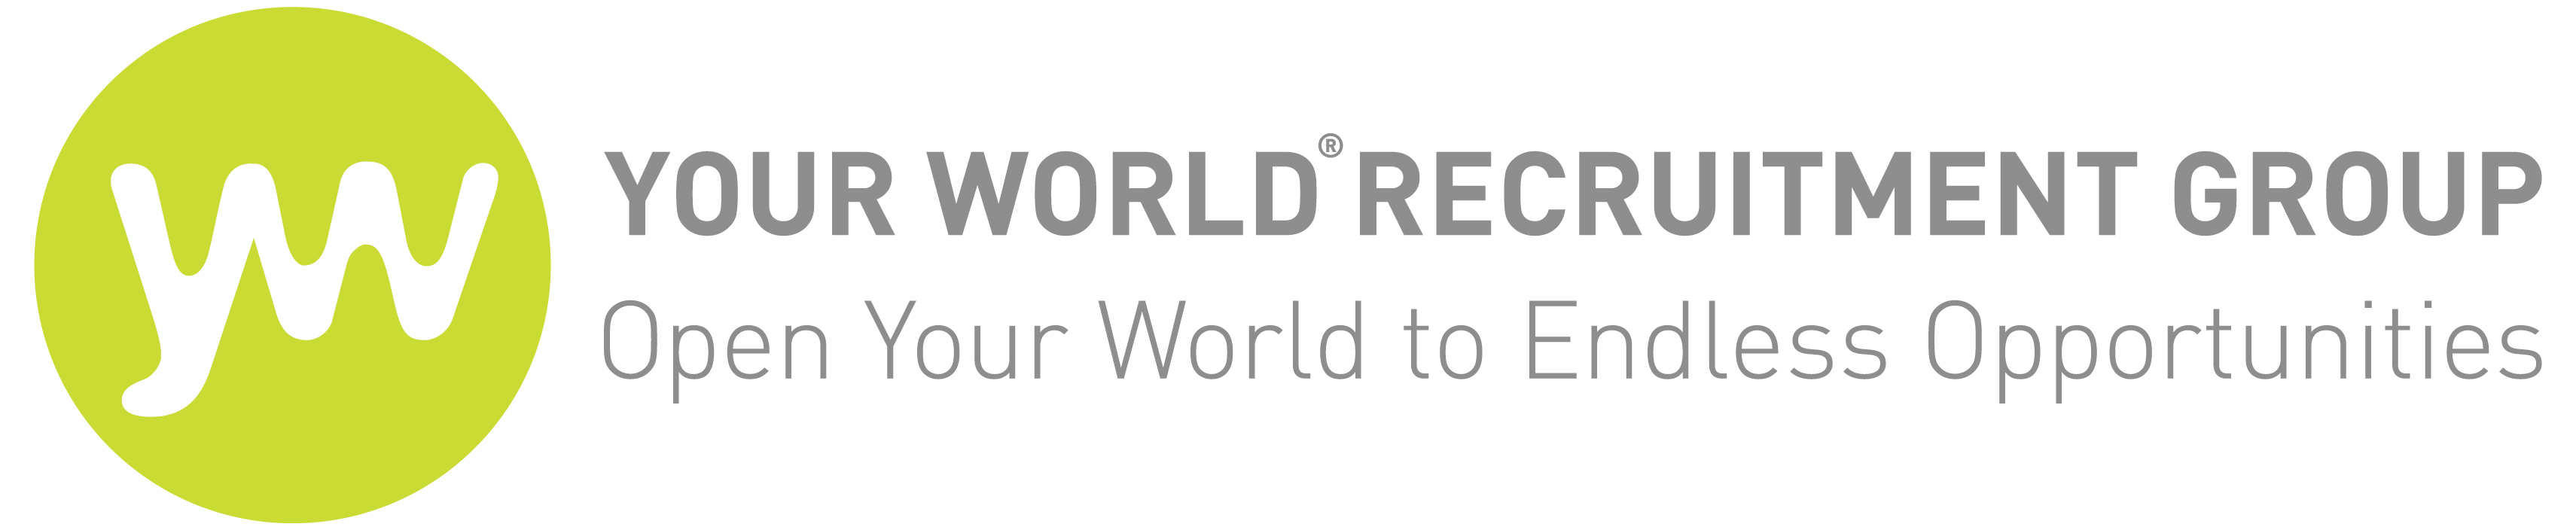 Your World Recruitment Ltd